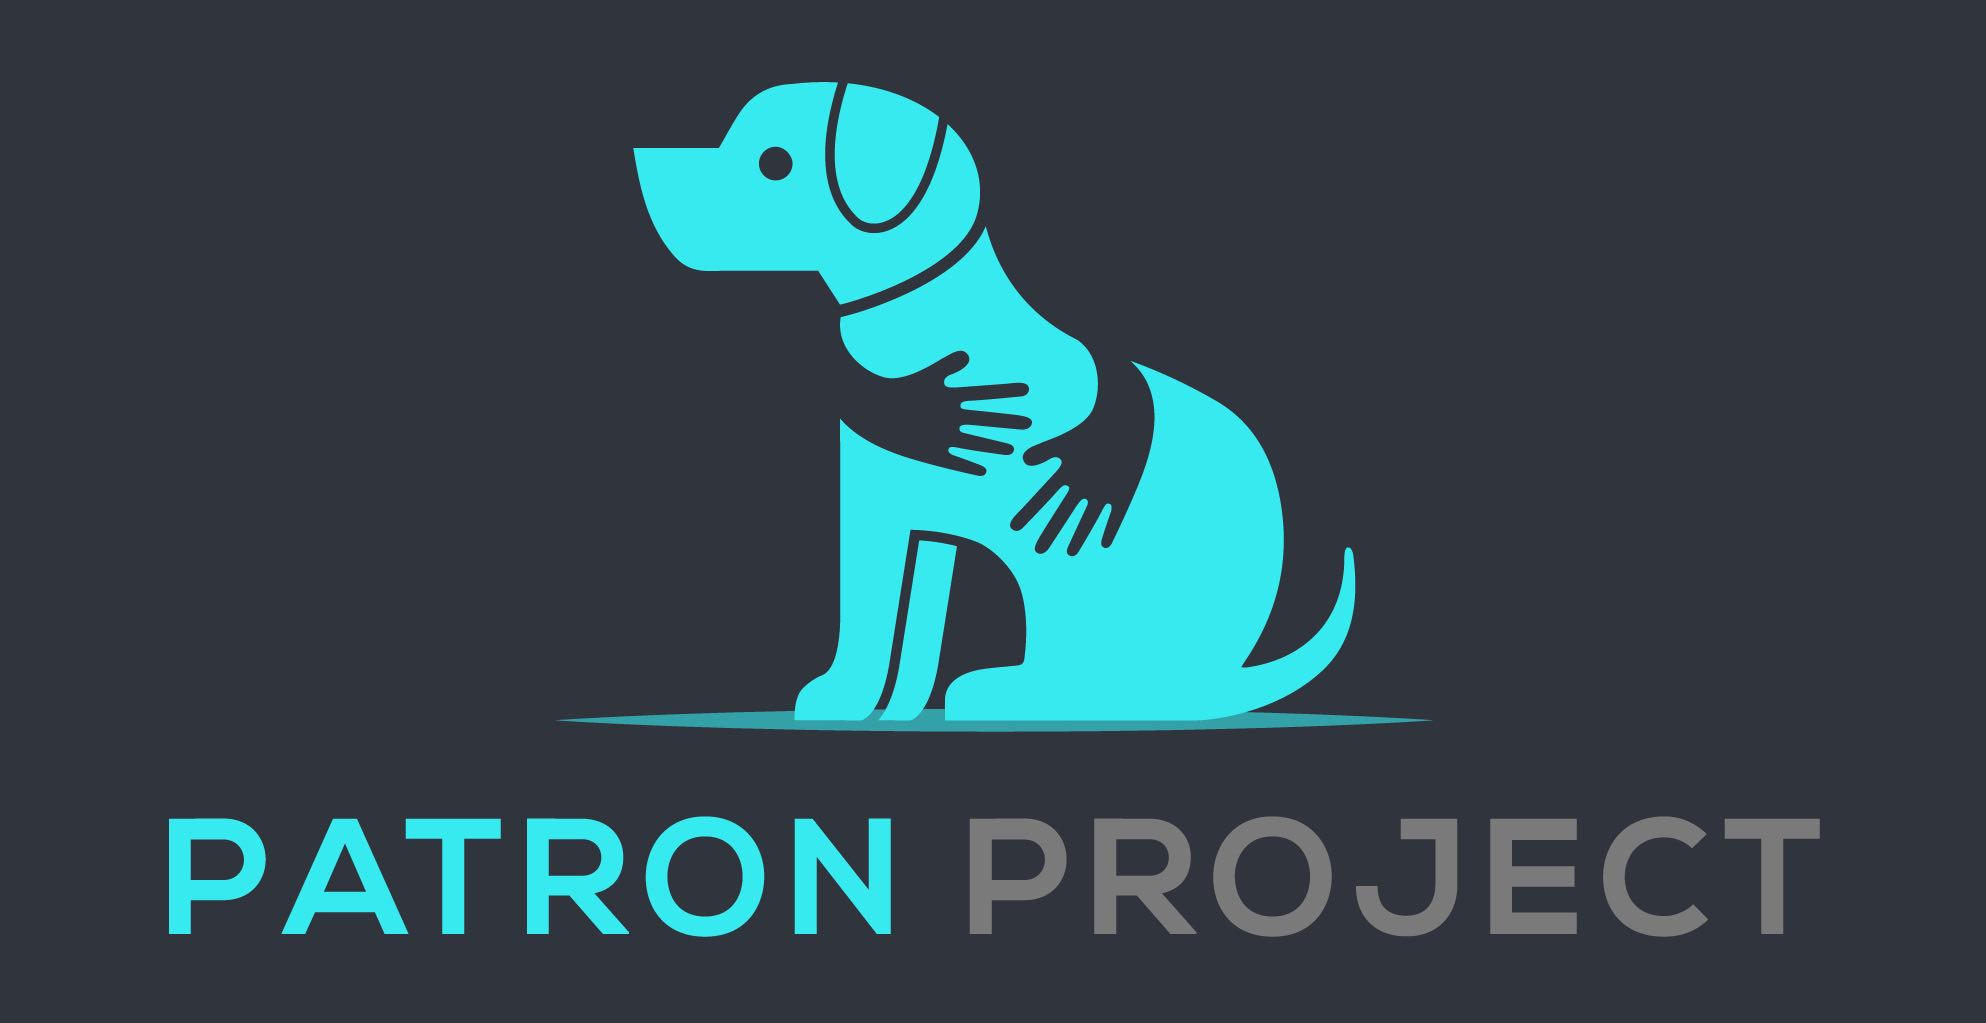 Patron Project has Arrived and it's Going to Change Everything. Dogs First